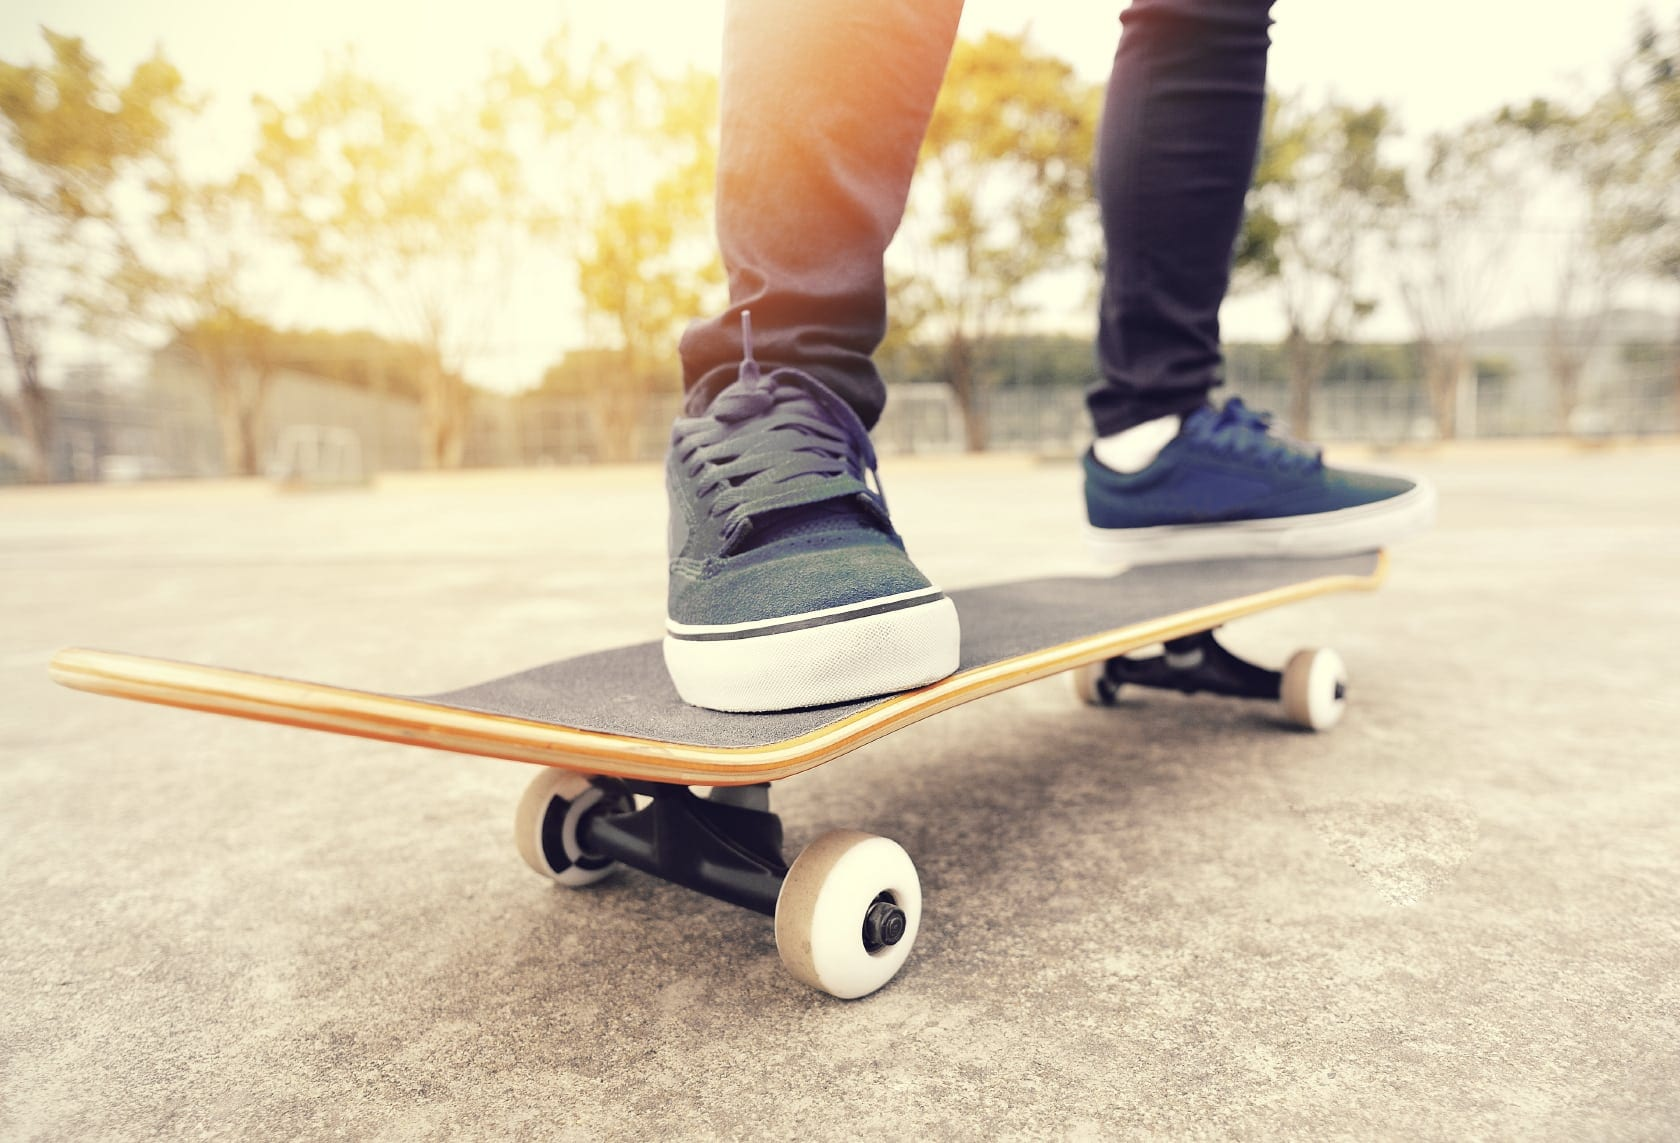 Young Male Teen Riding Skateboard Stock Photo